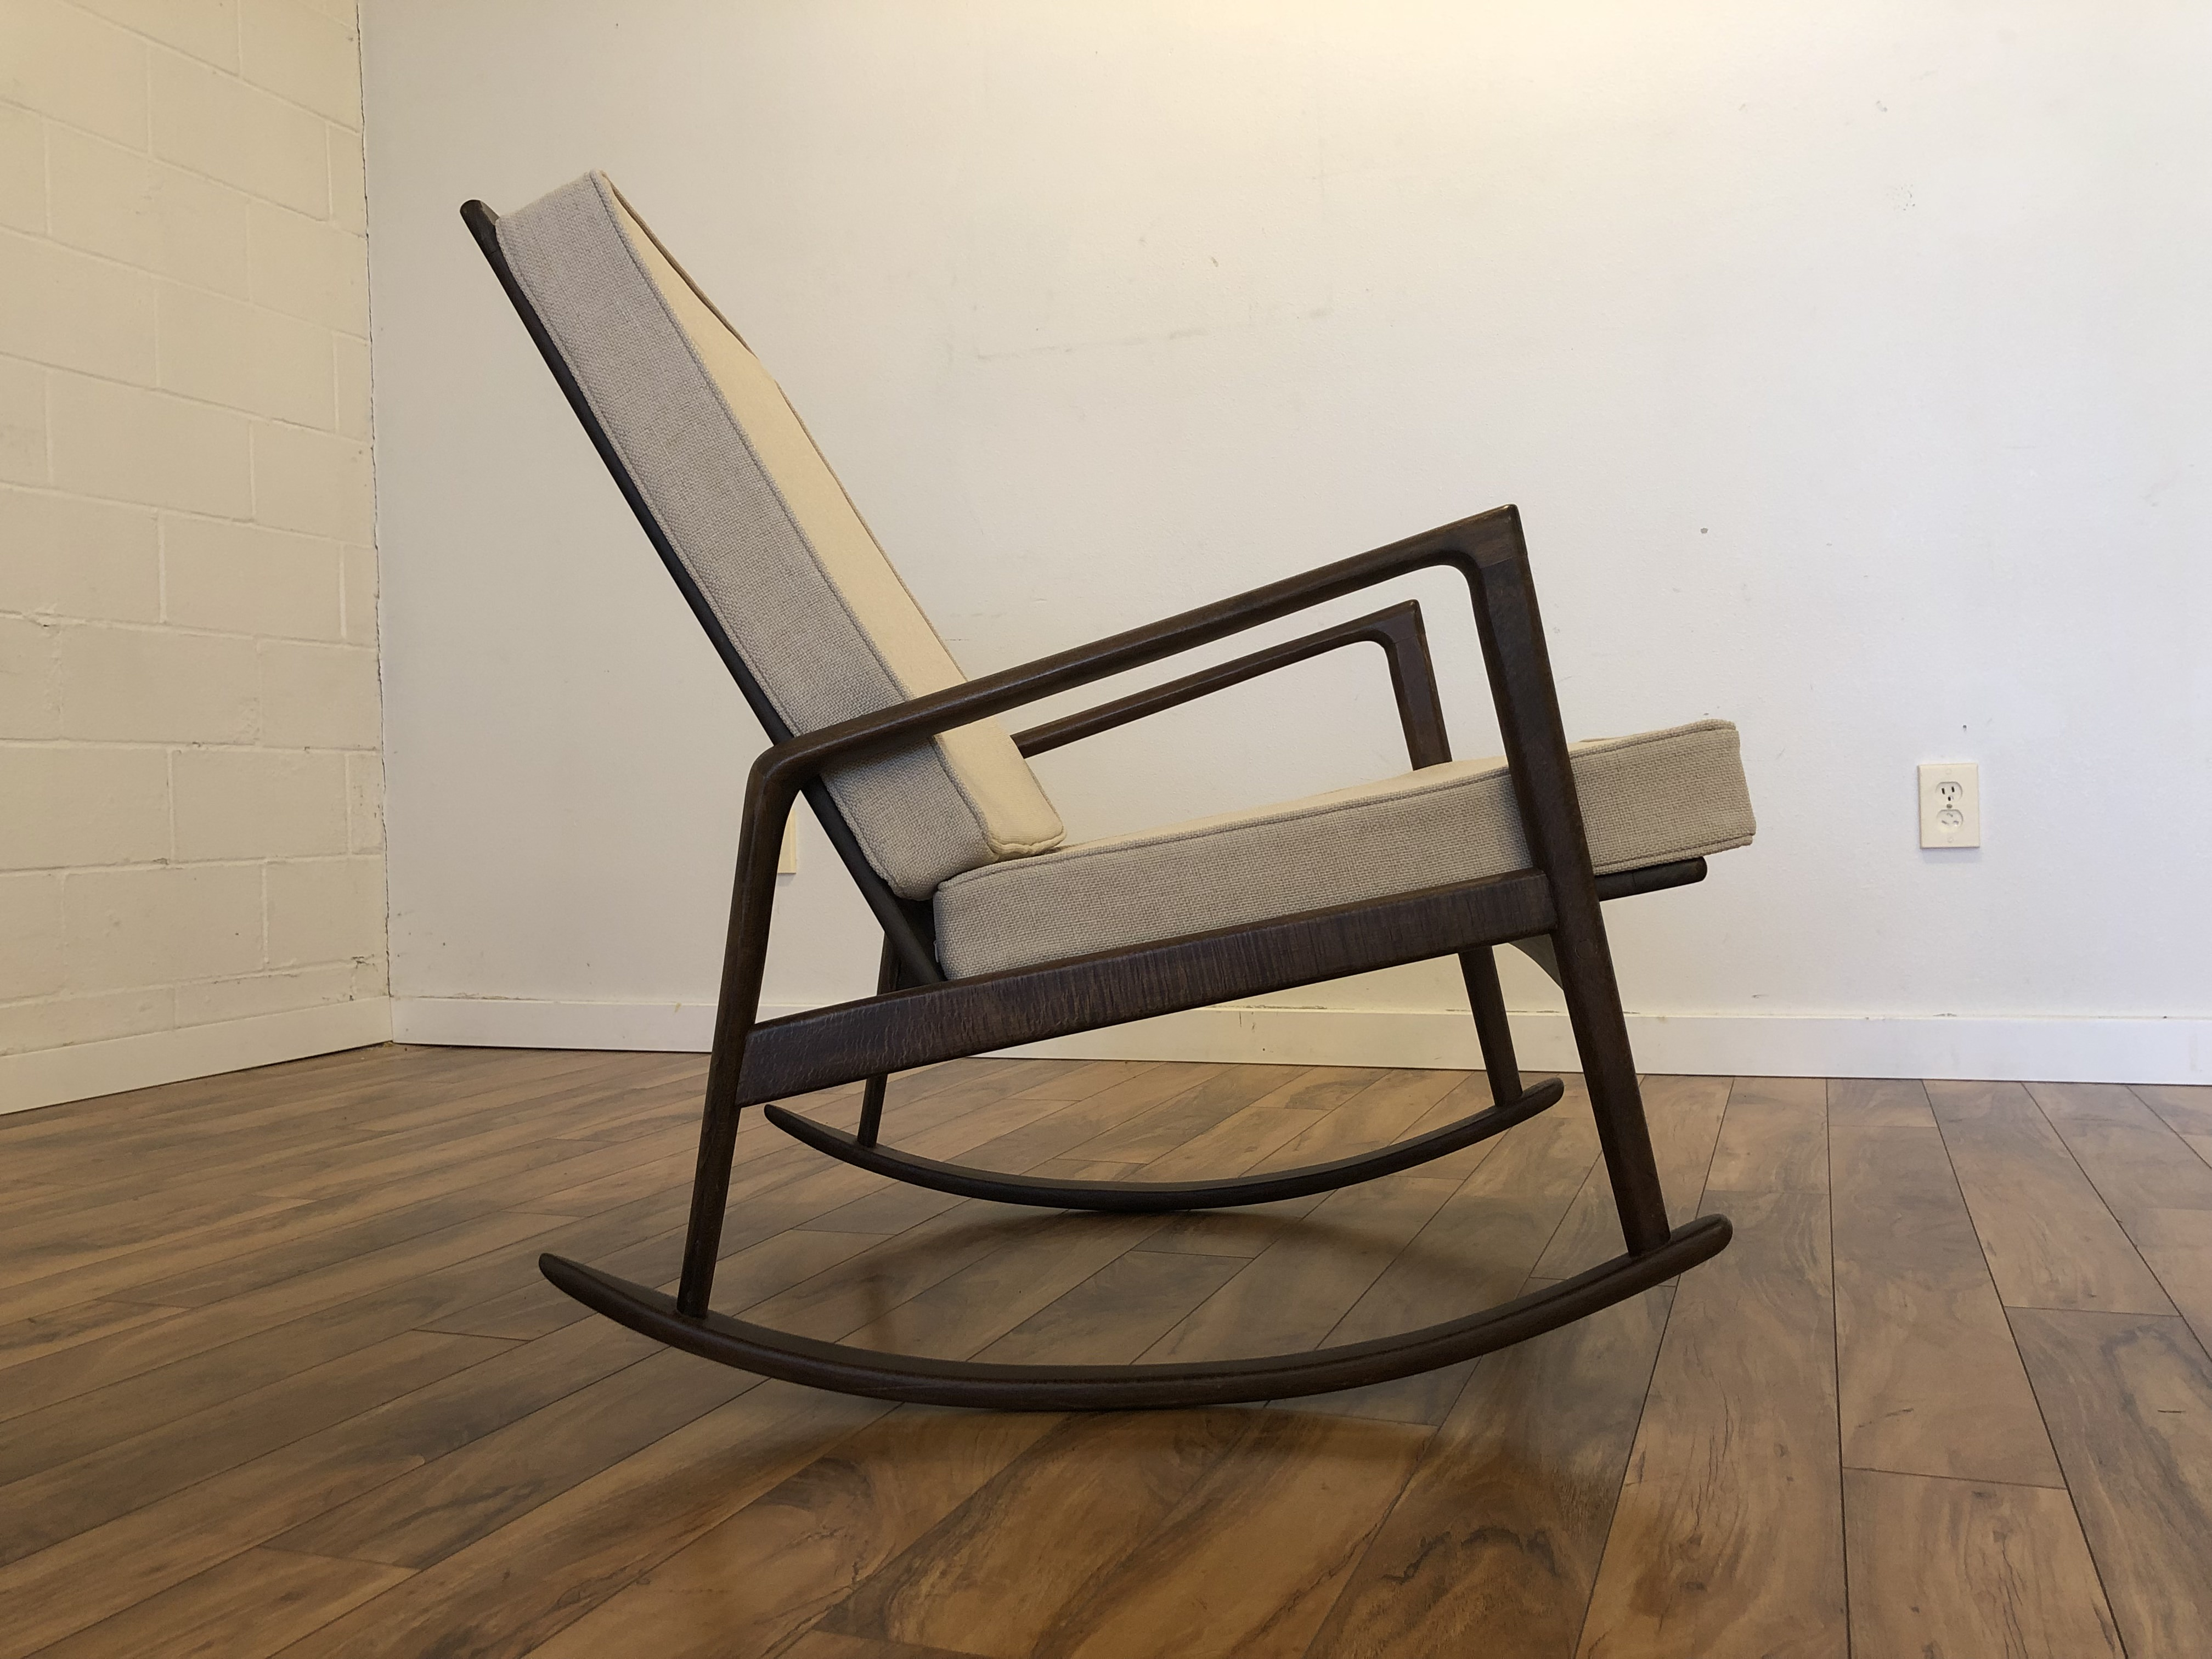 Outstanding Sold Italian Mid Century Rocking Chair Modern To Vintage Gmtry Best Dining Table And Chair Ideas Images Gmtryco